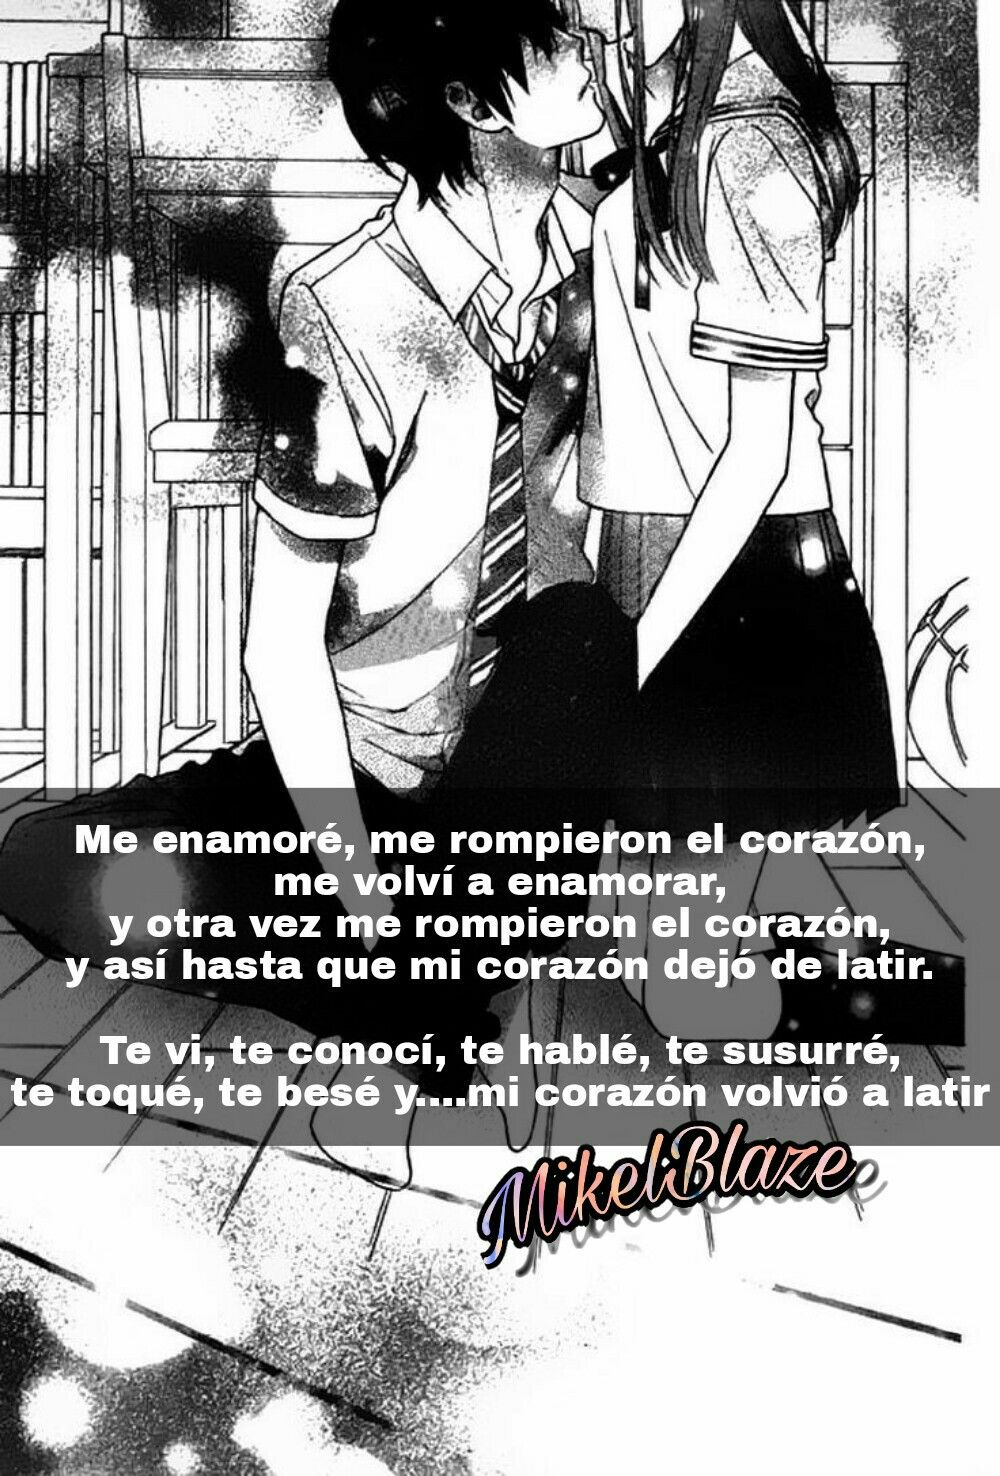 frases anime tristes amor: Anime Love, Love Quotes Y Anime